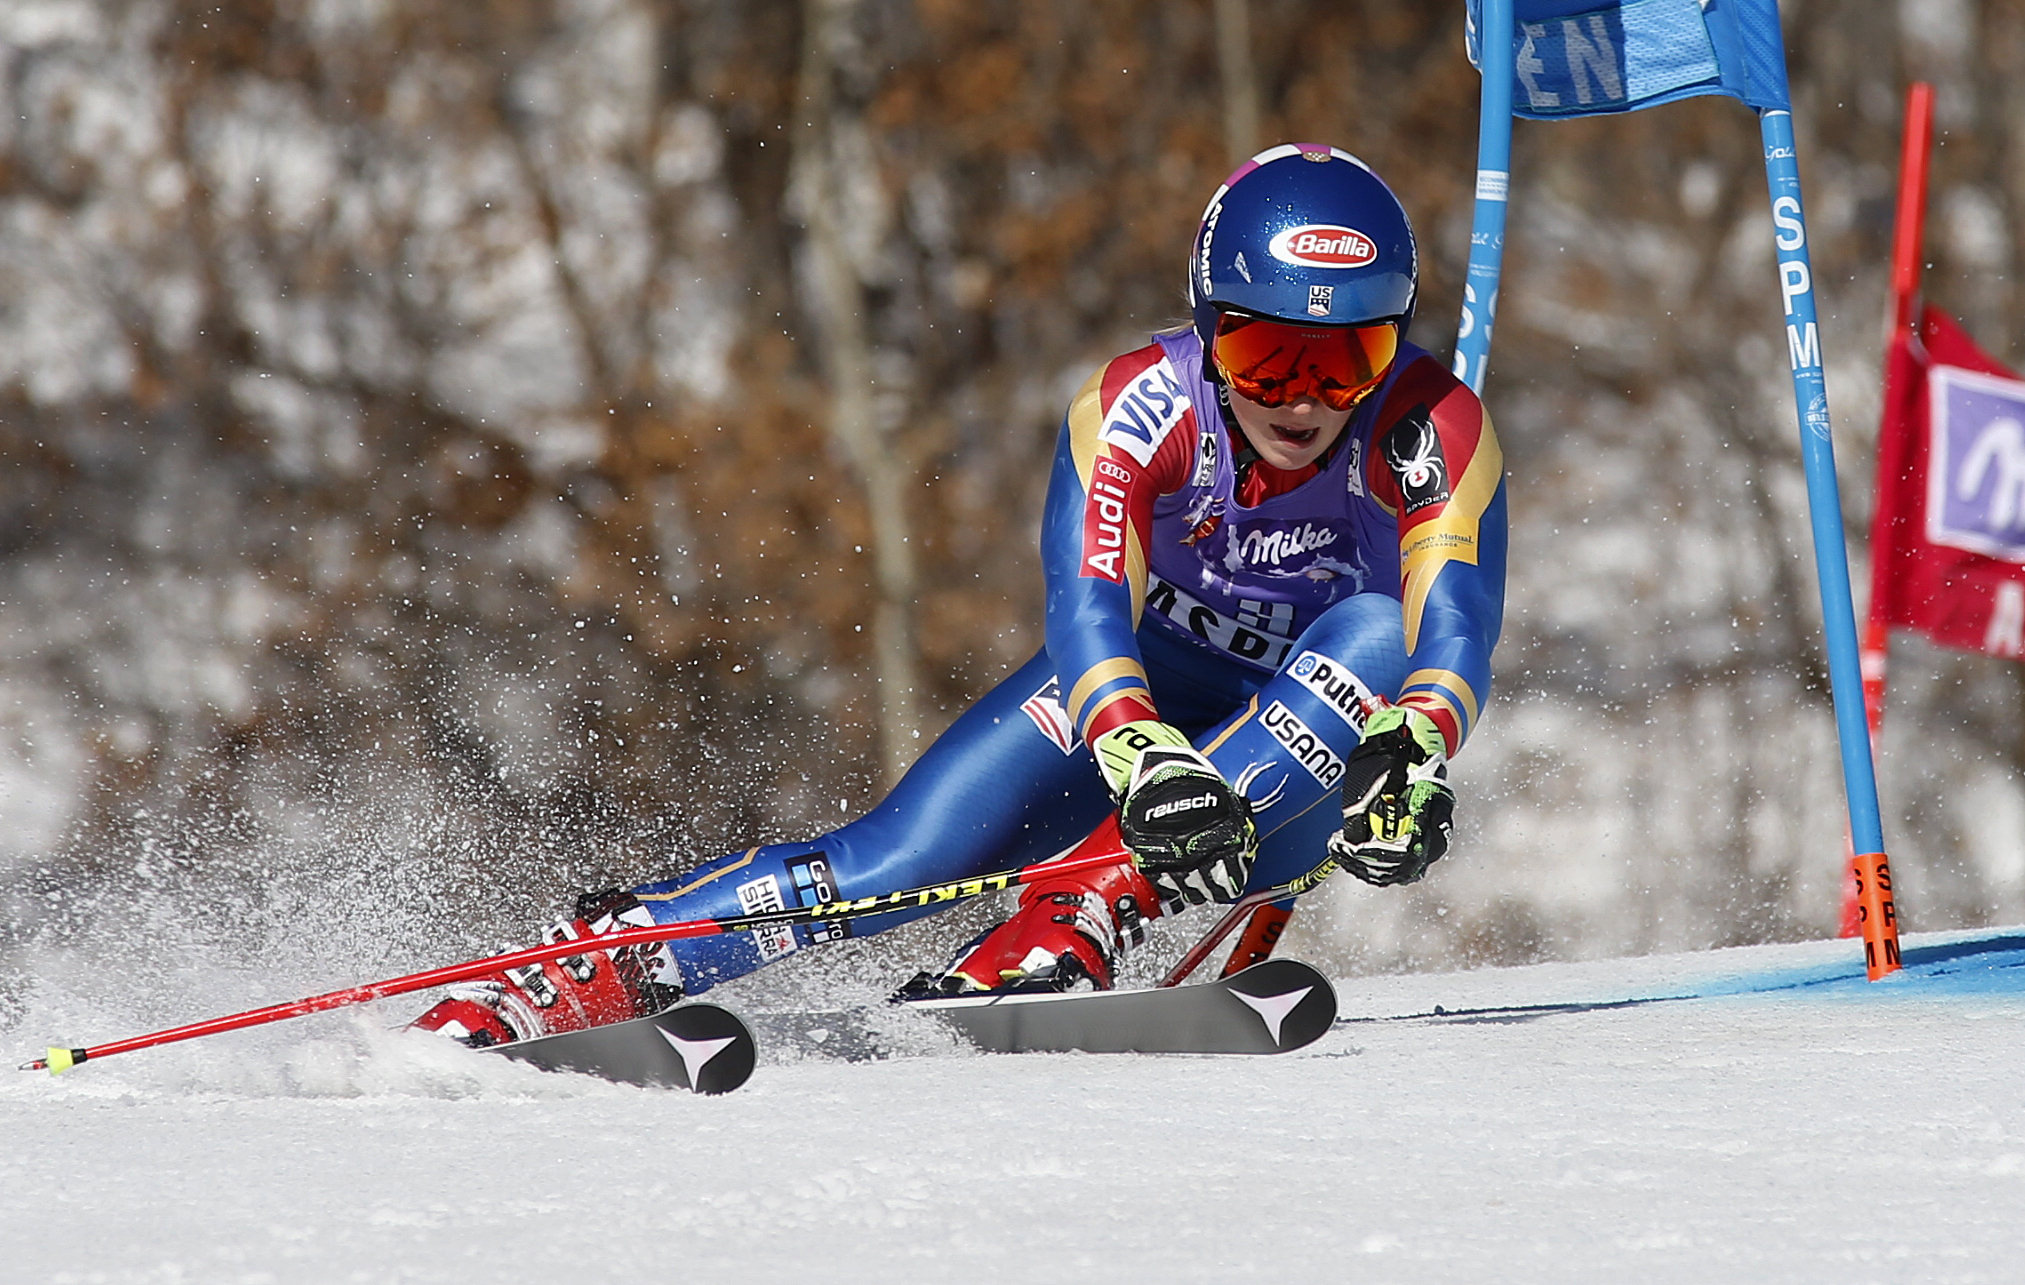 United States' Mikaela Shiffrin skis during the first run of a women's World Cup giant slalom ski race Sunday, March 19, 2017, in Aspen, Colo. (AP Photo/Nathan Bilow)